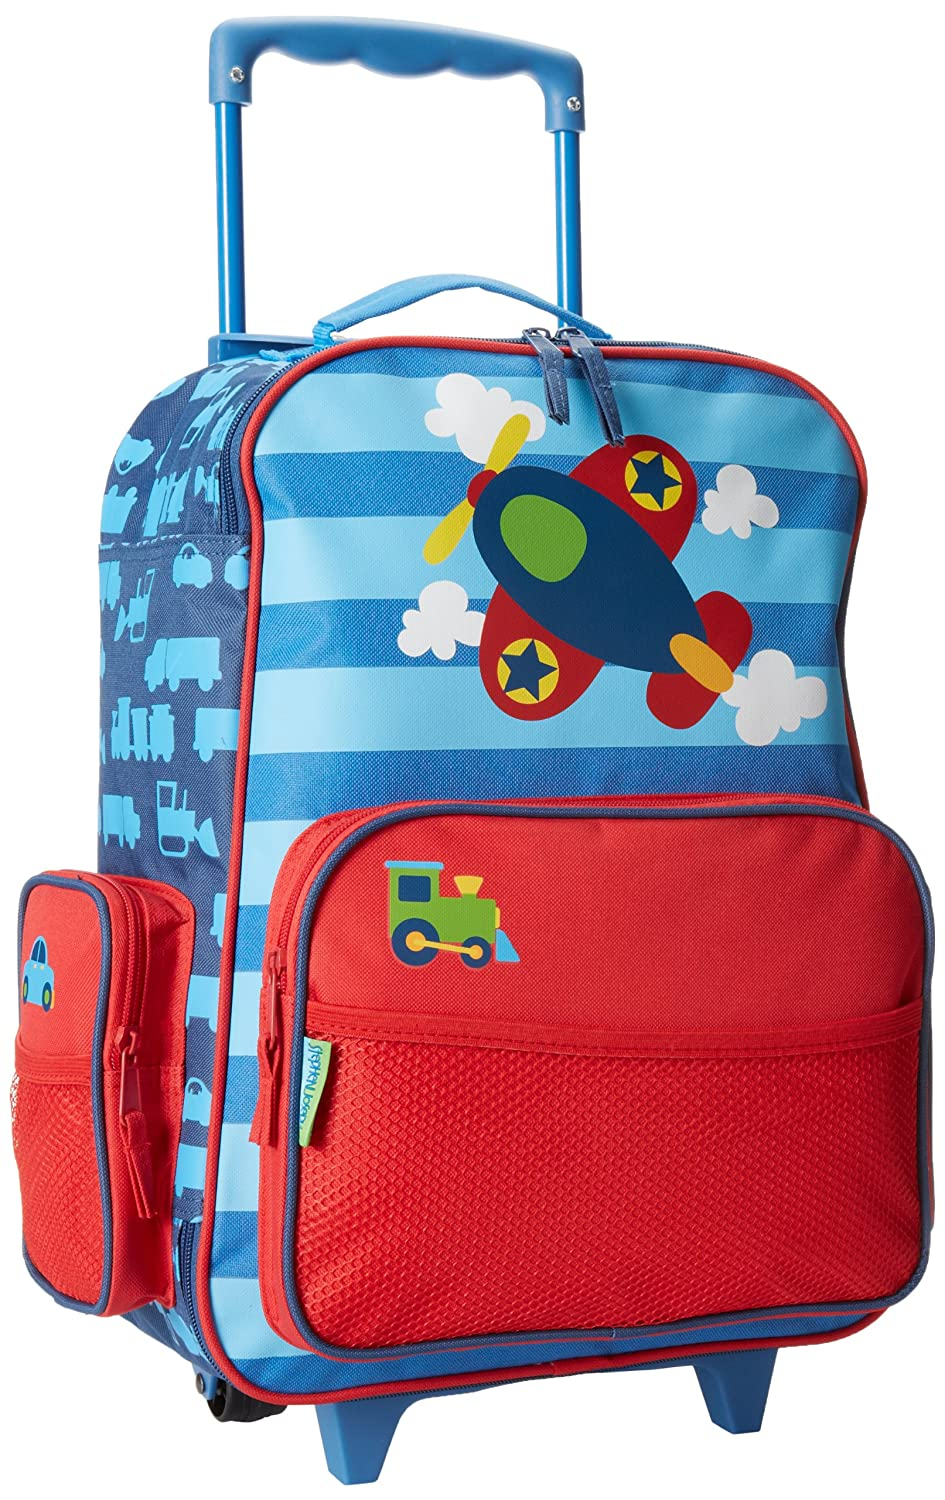 34b07c2977eb Personalized Rolling Backpacks For Toddlers- Fenix Toulouse Handball